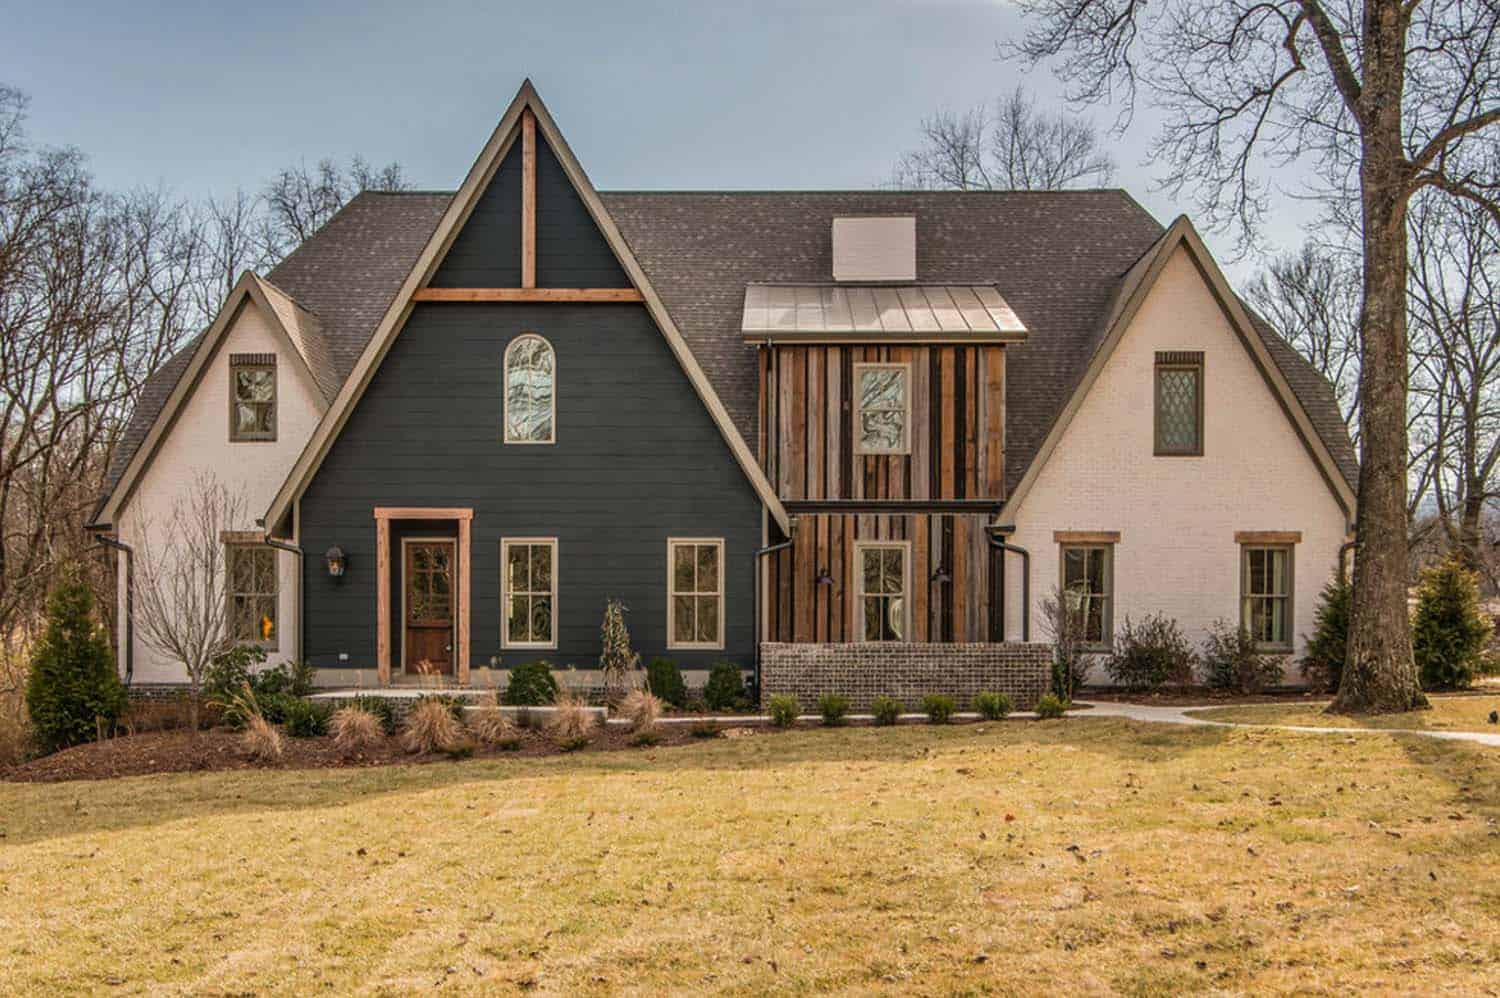 Beauteous Transitional Style Kindesign Tudor Style Inspired Dwelling Reclaimed Barn Wood Nashville Pottery Barn Inspired Homes Barn Inspired Houses home decor Barn Inspired Homes